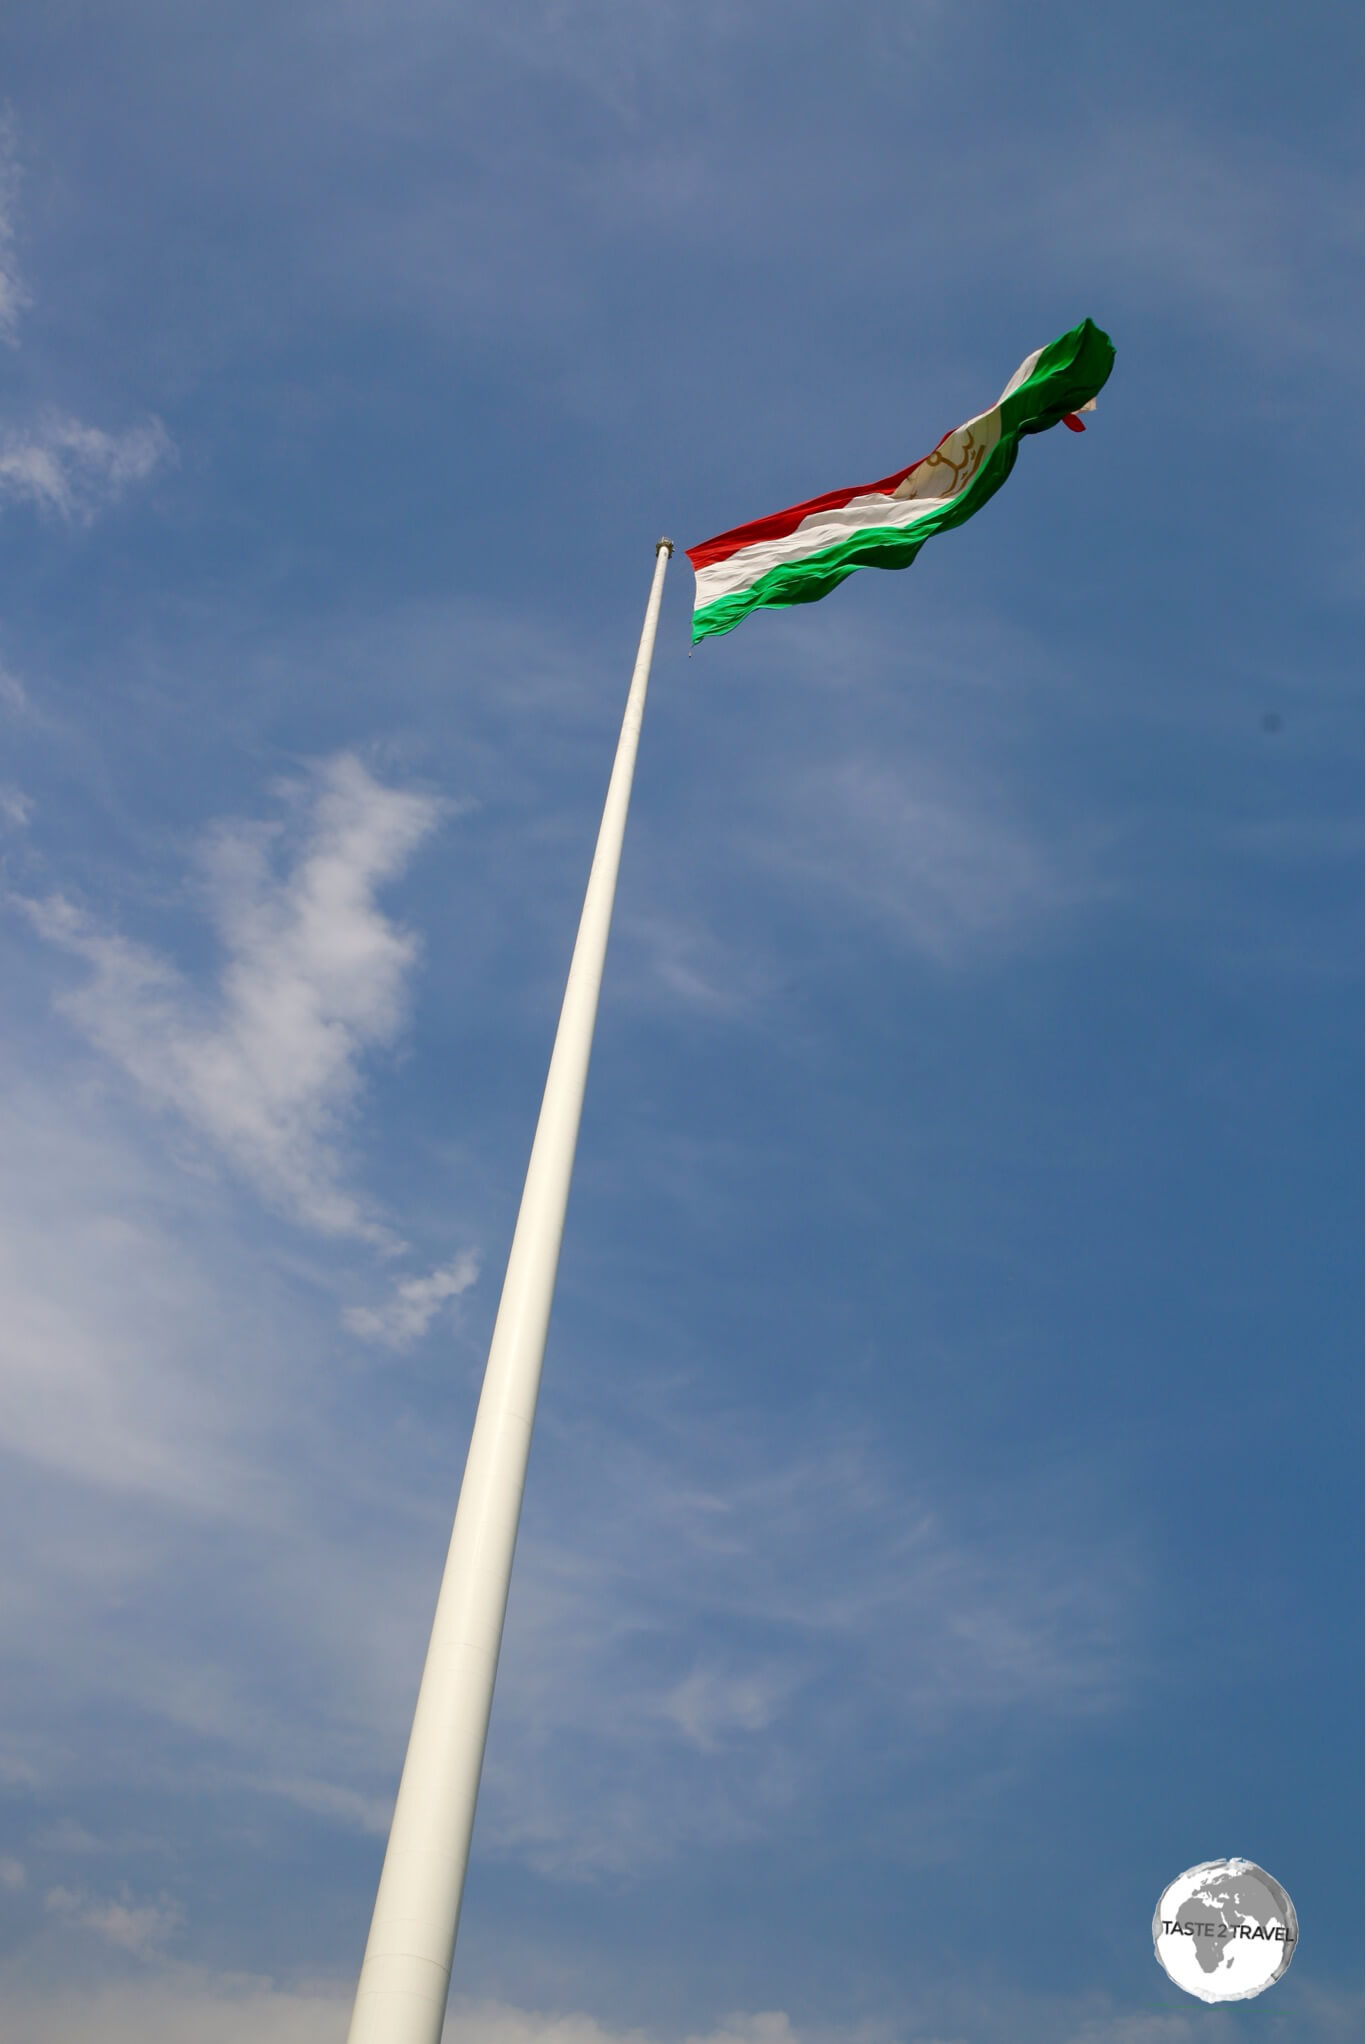 At 165 metres (541 feet), the Dushanbe flagpole is the 2nd tallest in the world.